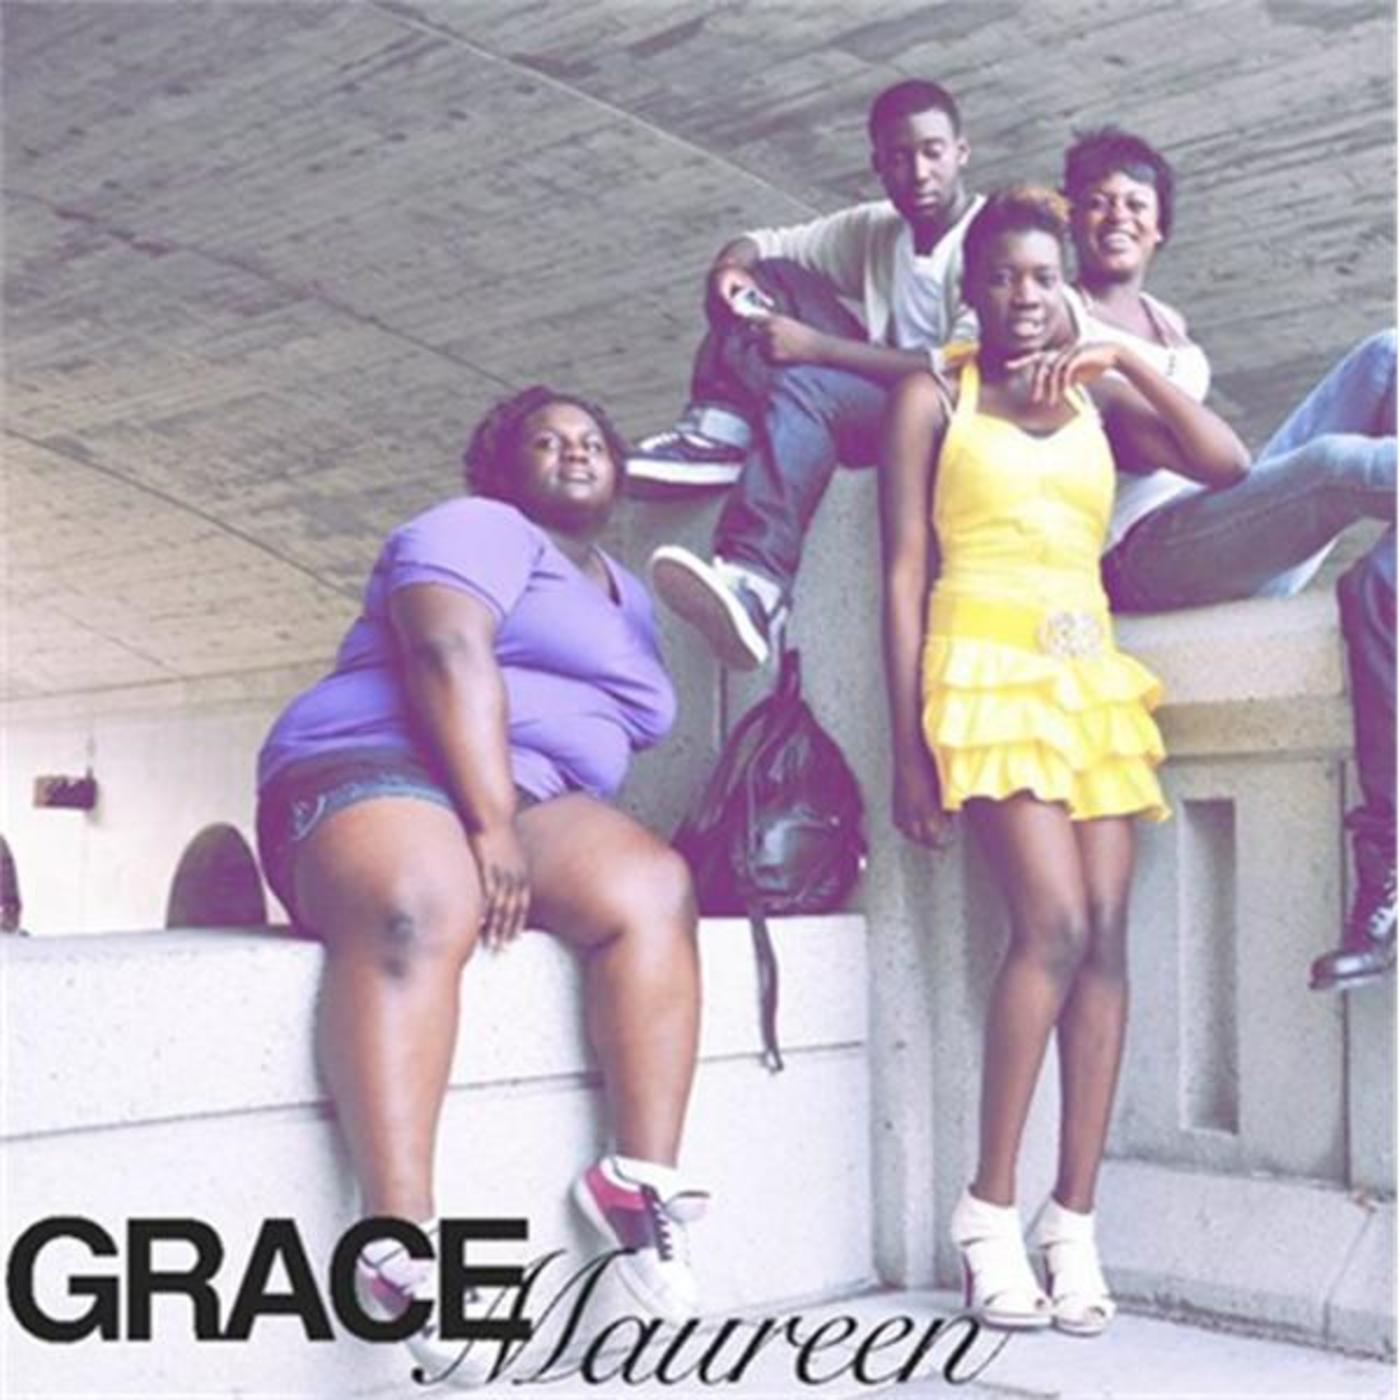 GraceMaureen